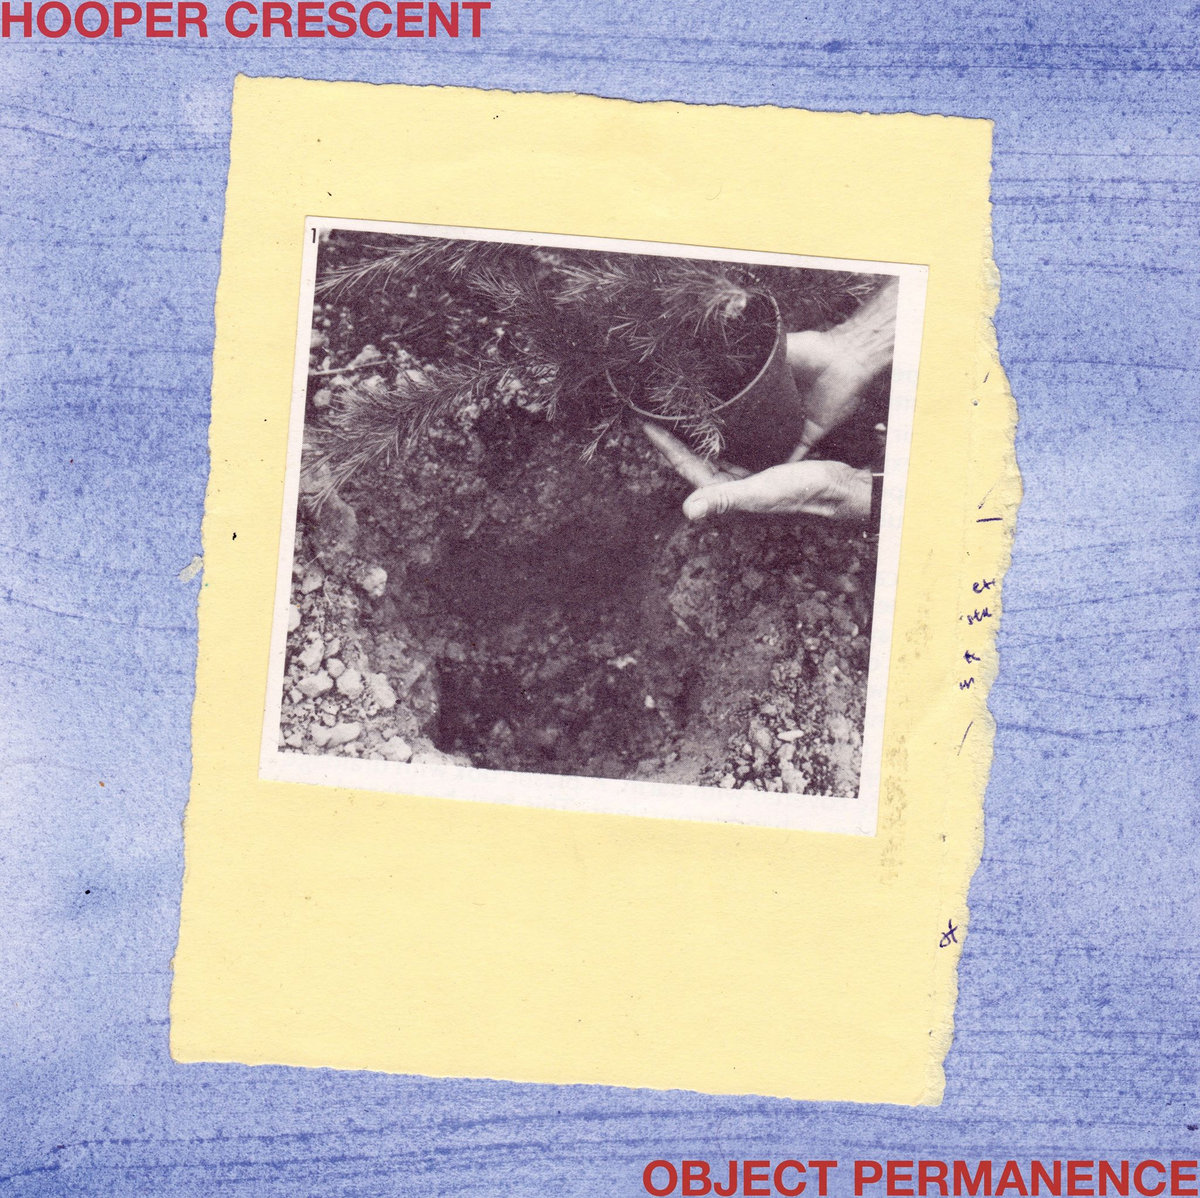 Object Permanence | Hooper Crescent | POLAKS RECORDS